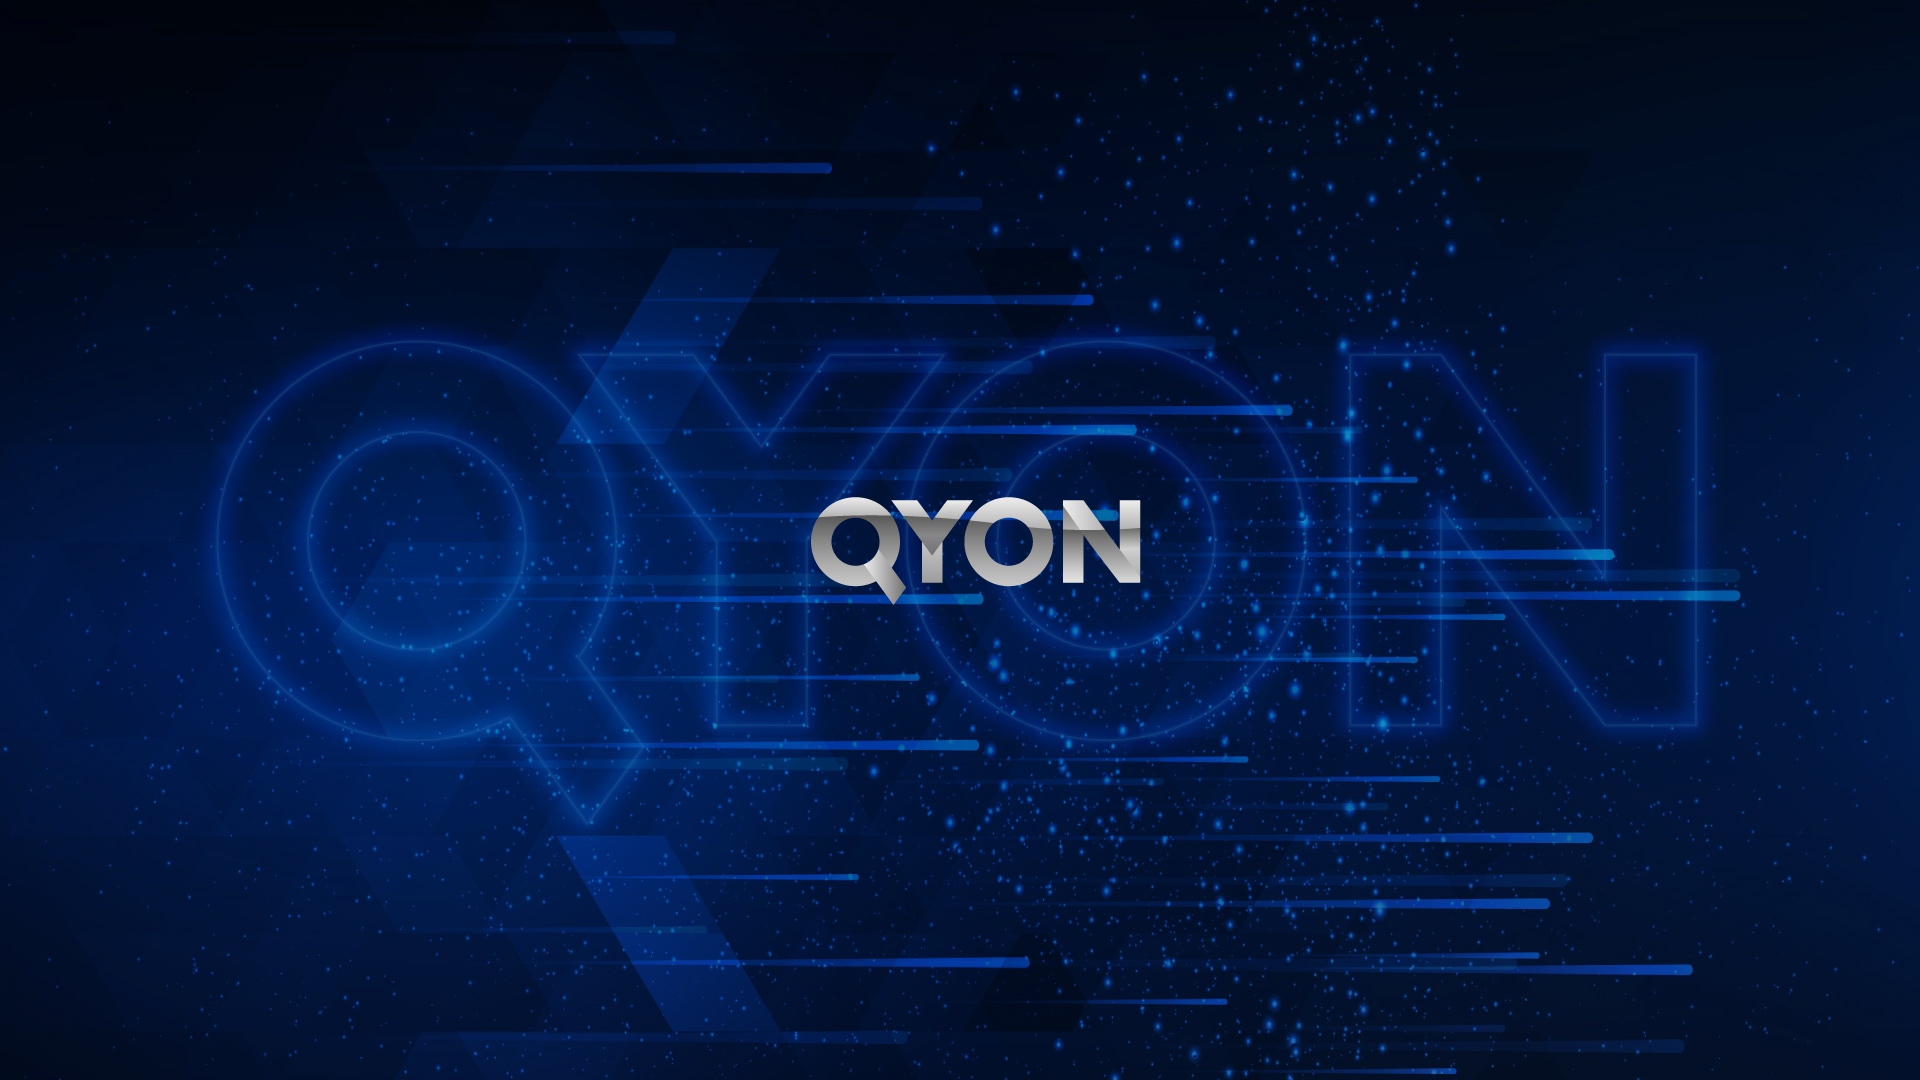 Wallpapers-QYON-1920x1080px_LO5